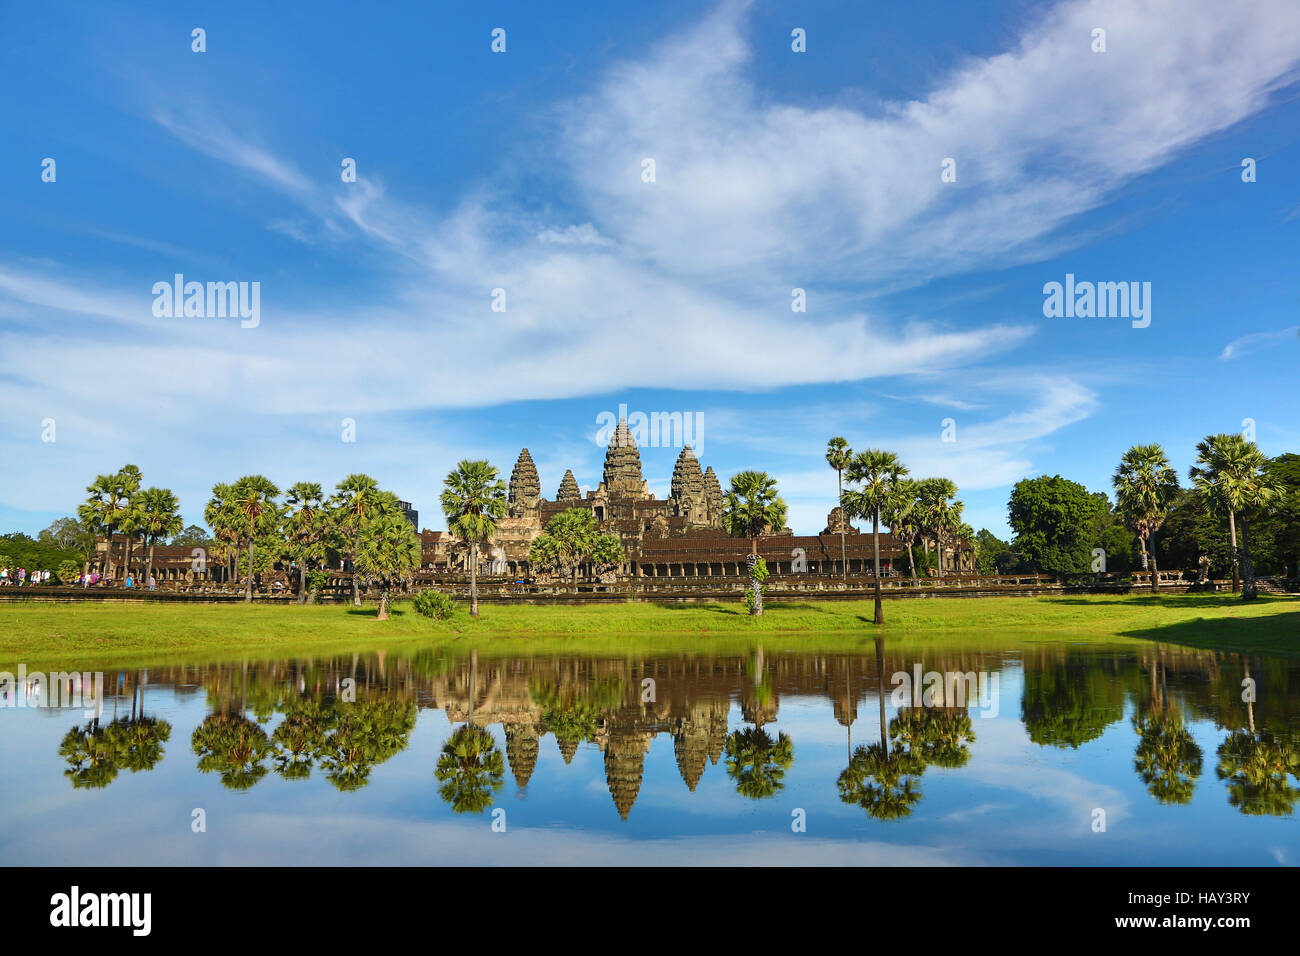 Angkor Wat Temple in Siem Reap, Cambodia - Stock Image